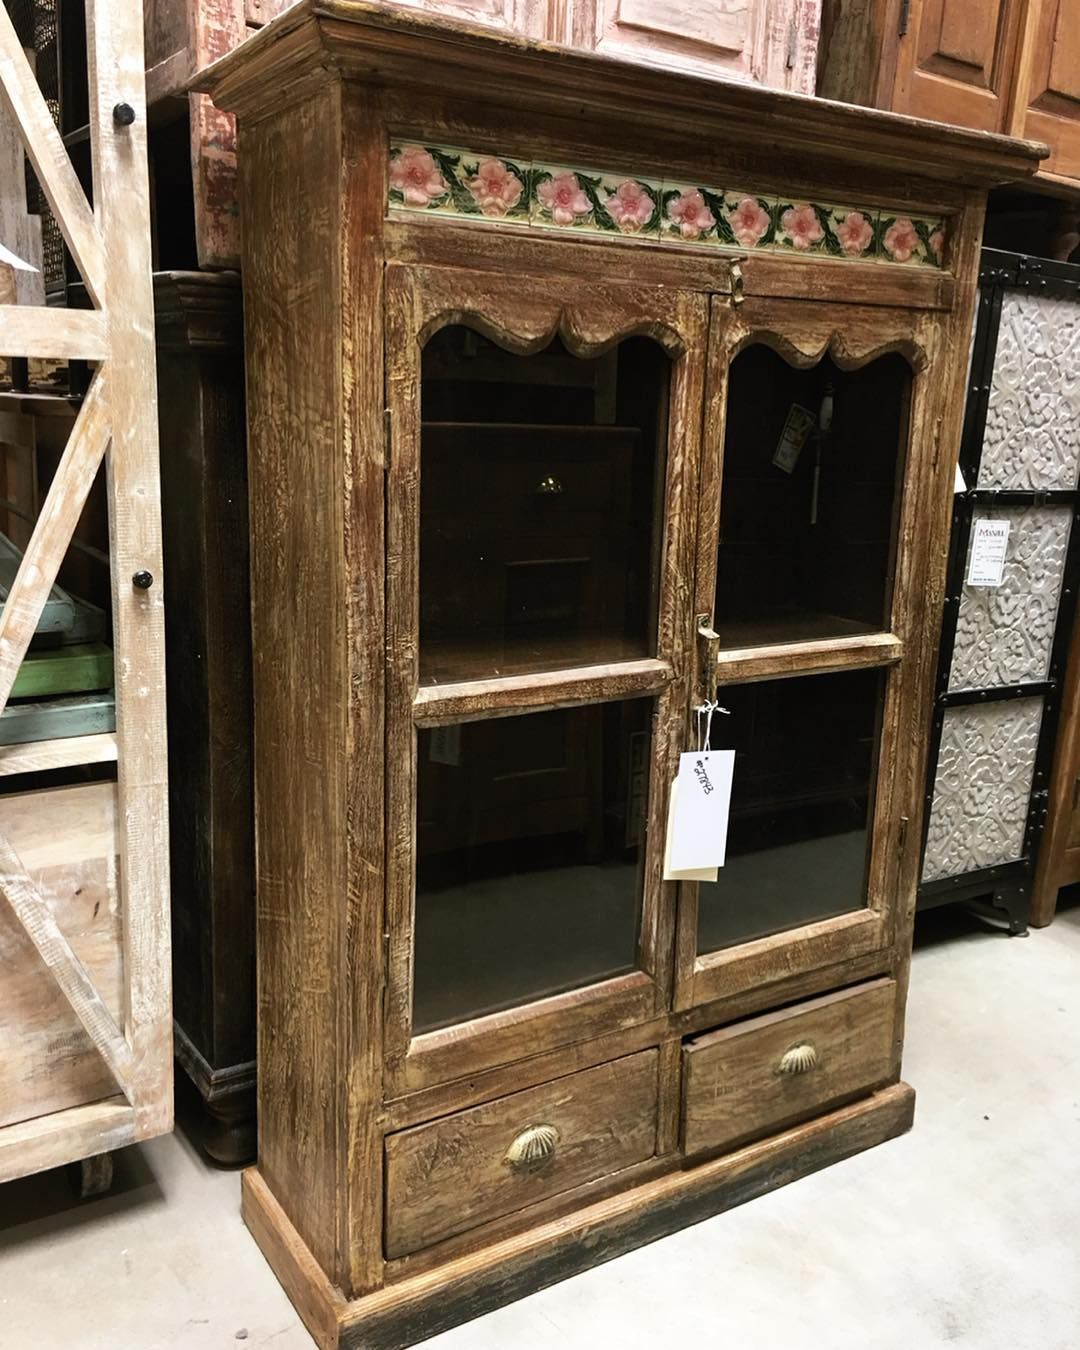 This Reclaimed Cabinet Has Beautiful Hand Painted Tile Set Into The Top To Form A Happy B Beautiful Furniture Pieces Reclaimed Furniture Rustic Wood Furniture